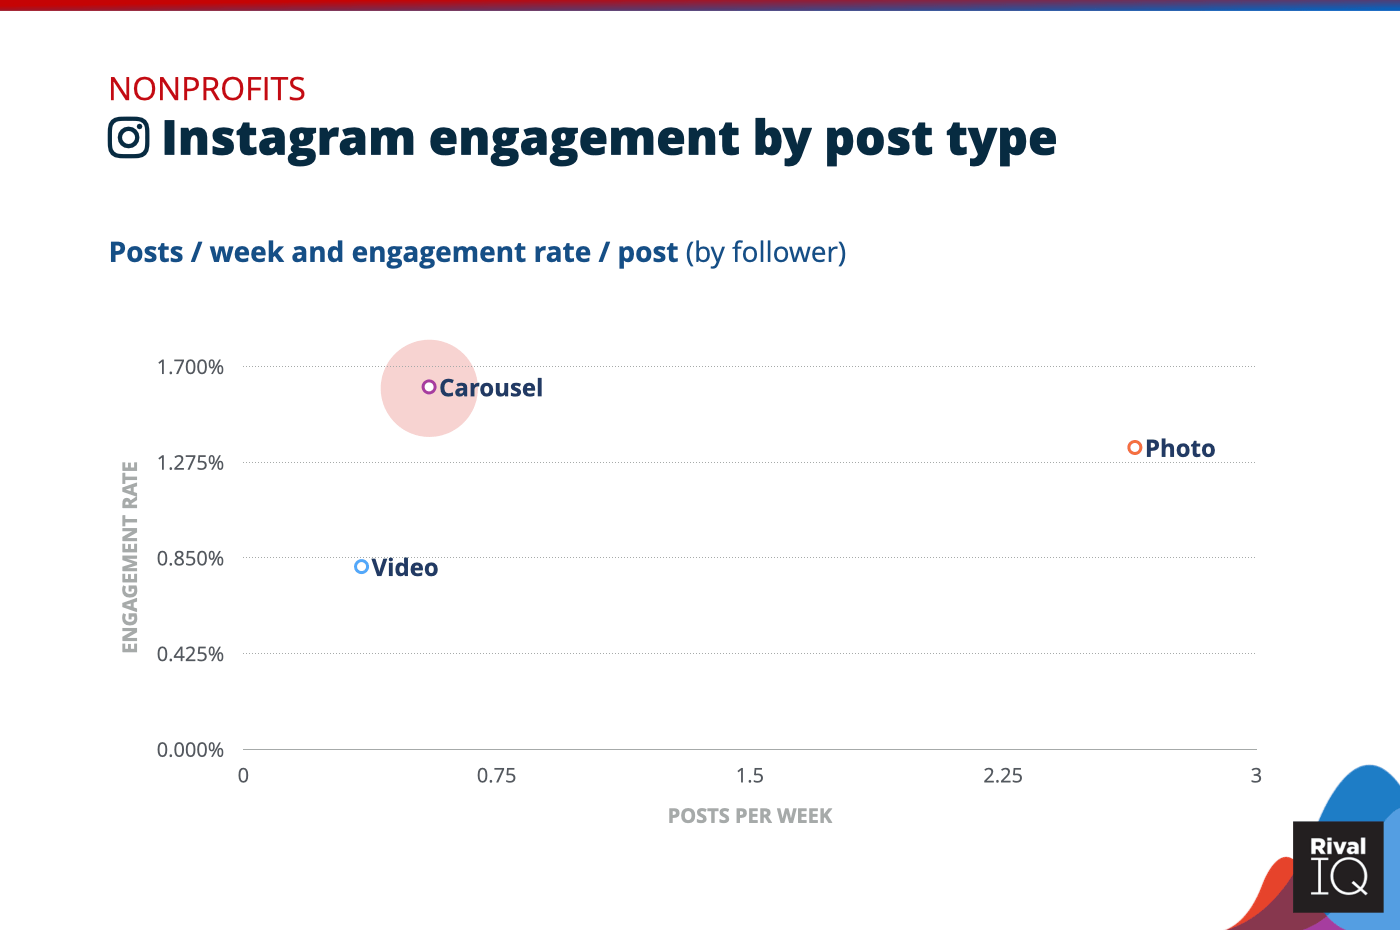 Chart of social media benchmarks for Instagram posts per week and engagement rate by post type, Nonprofits